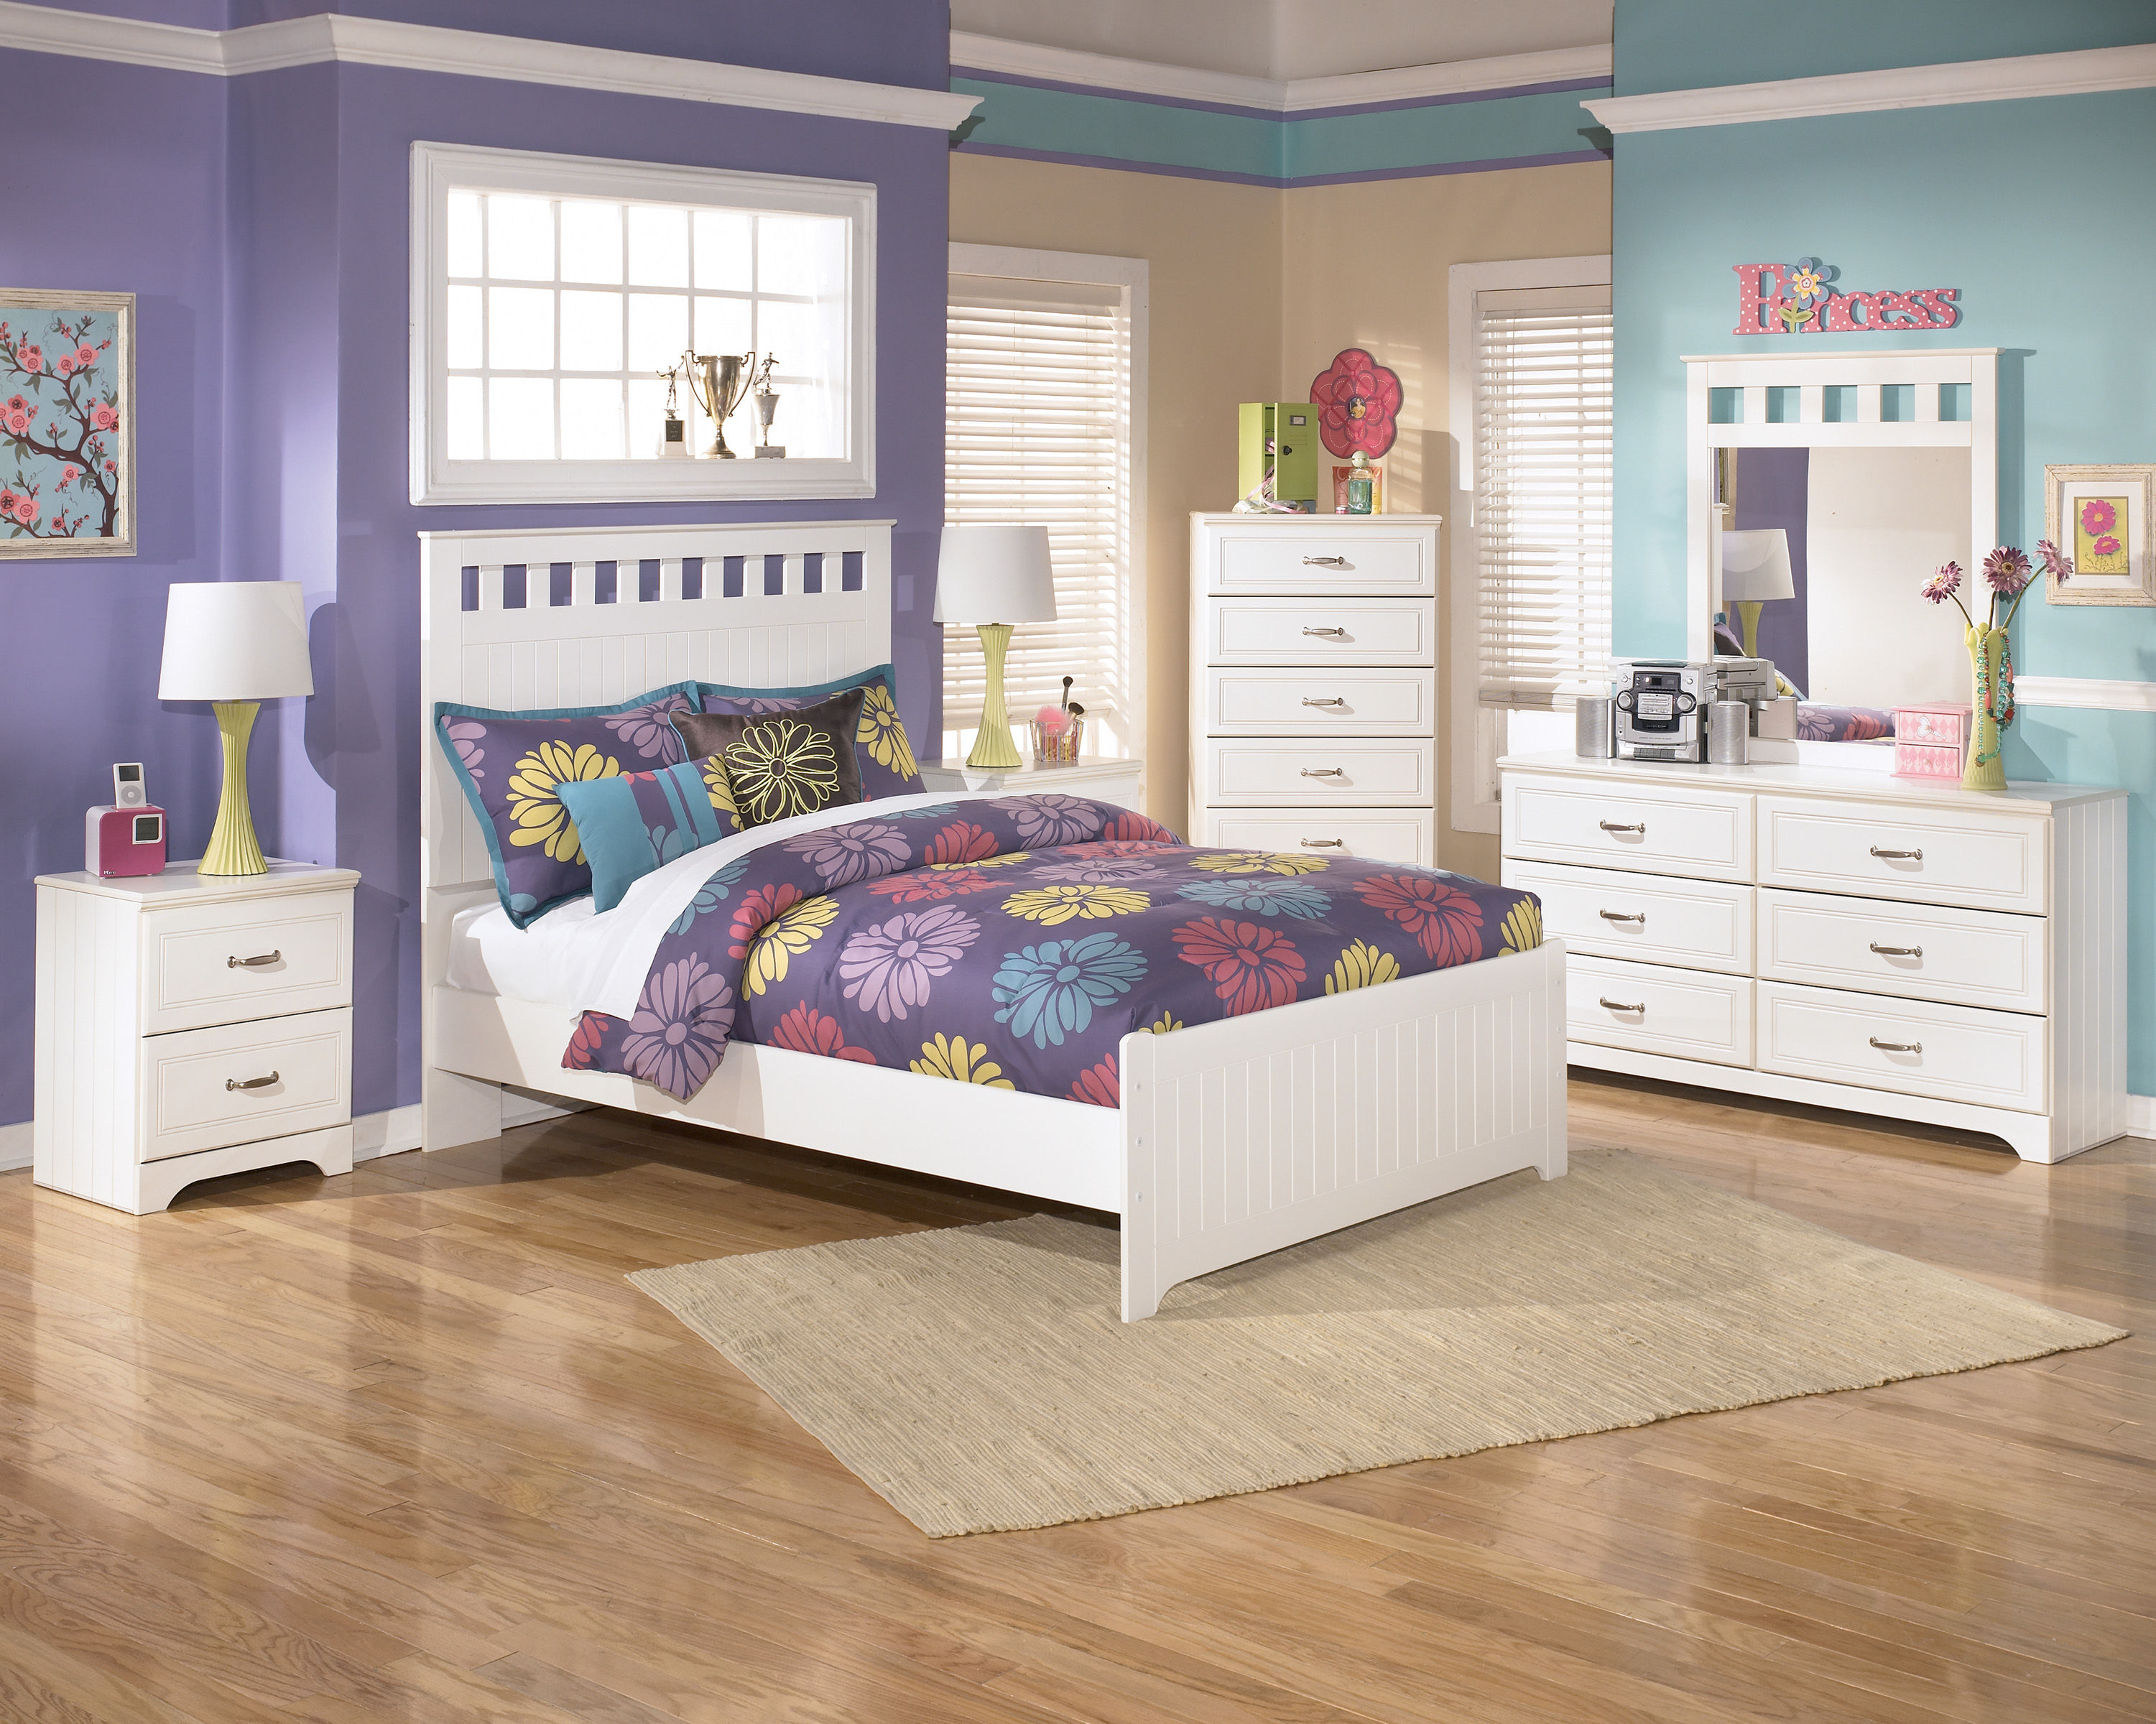 ashley furniture lulu kids bedroom set | the classy home